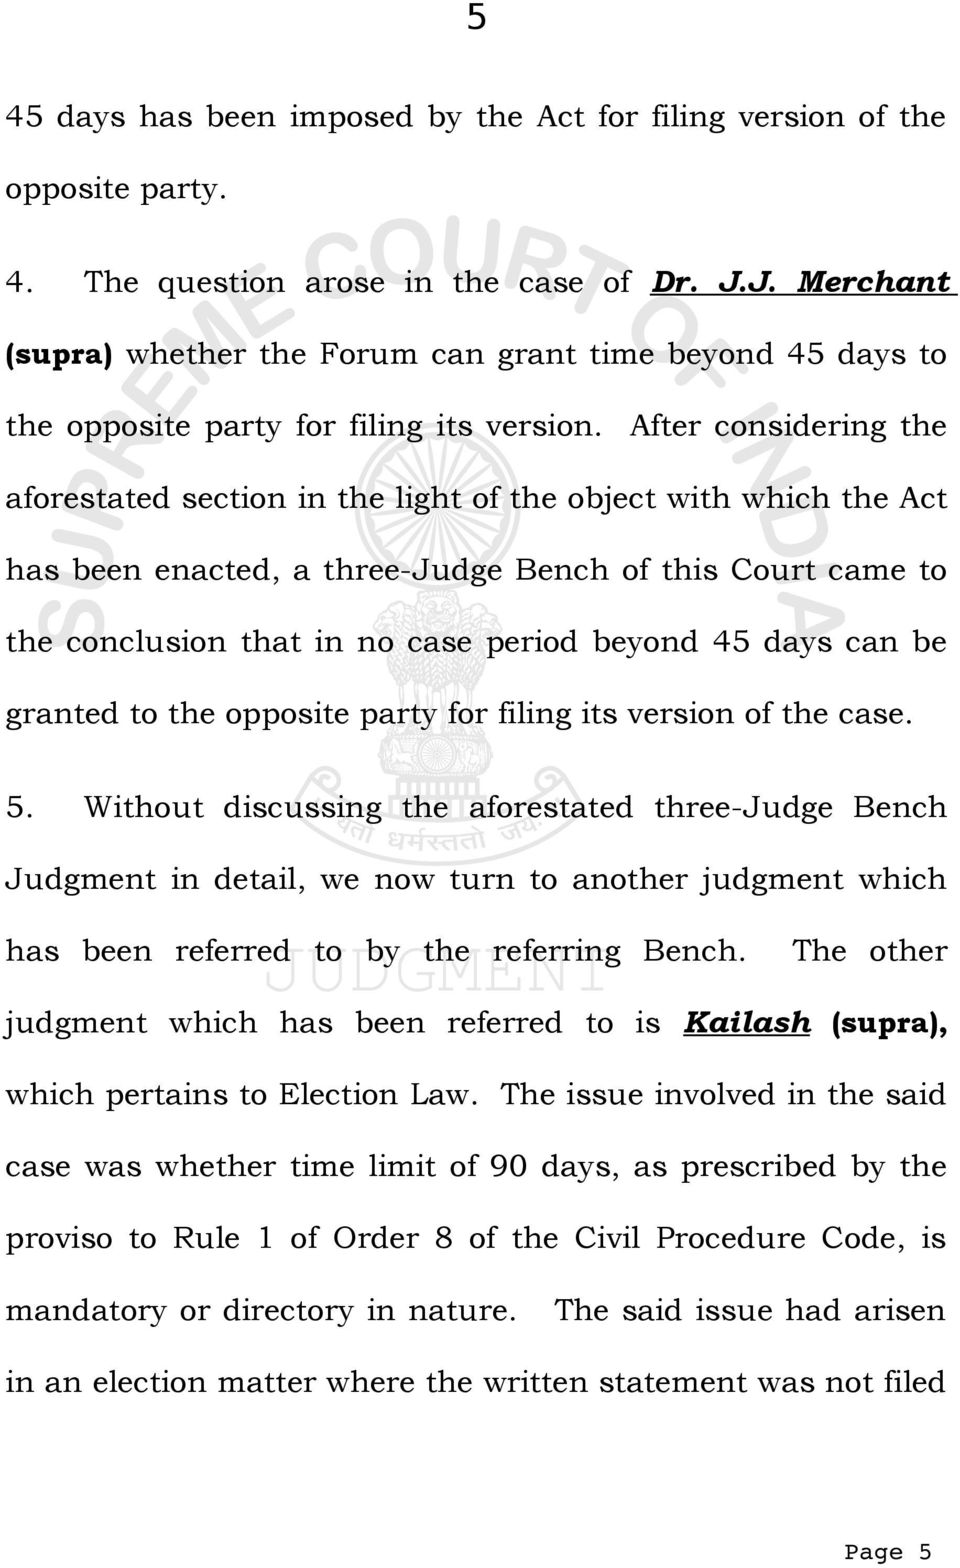 After considering the aforestated section in the light of the object with which the Act has been enacted, a three-judge Bench of this Court came to the conclusion that in no case period beyond 45